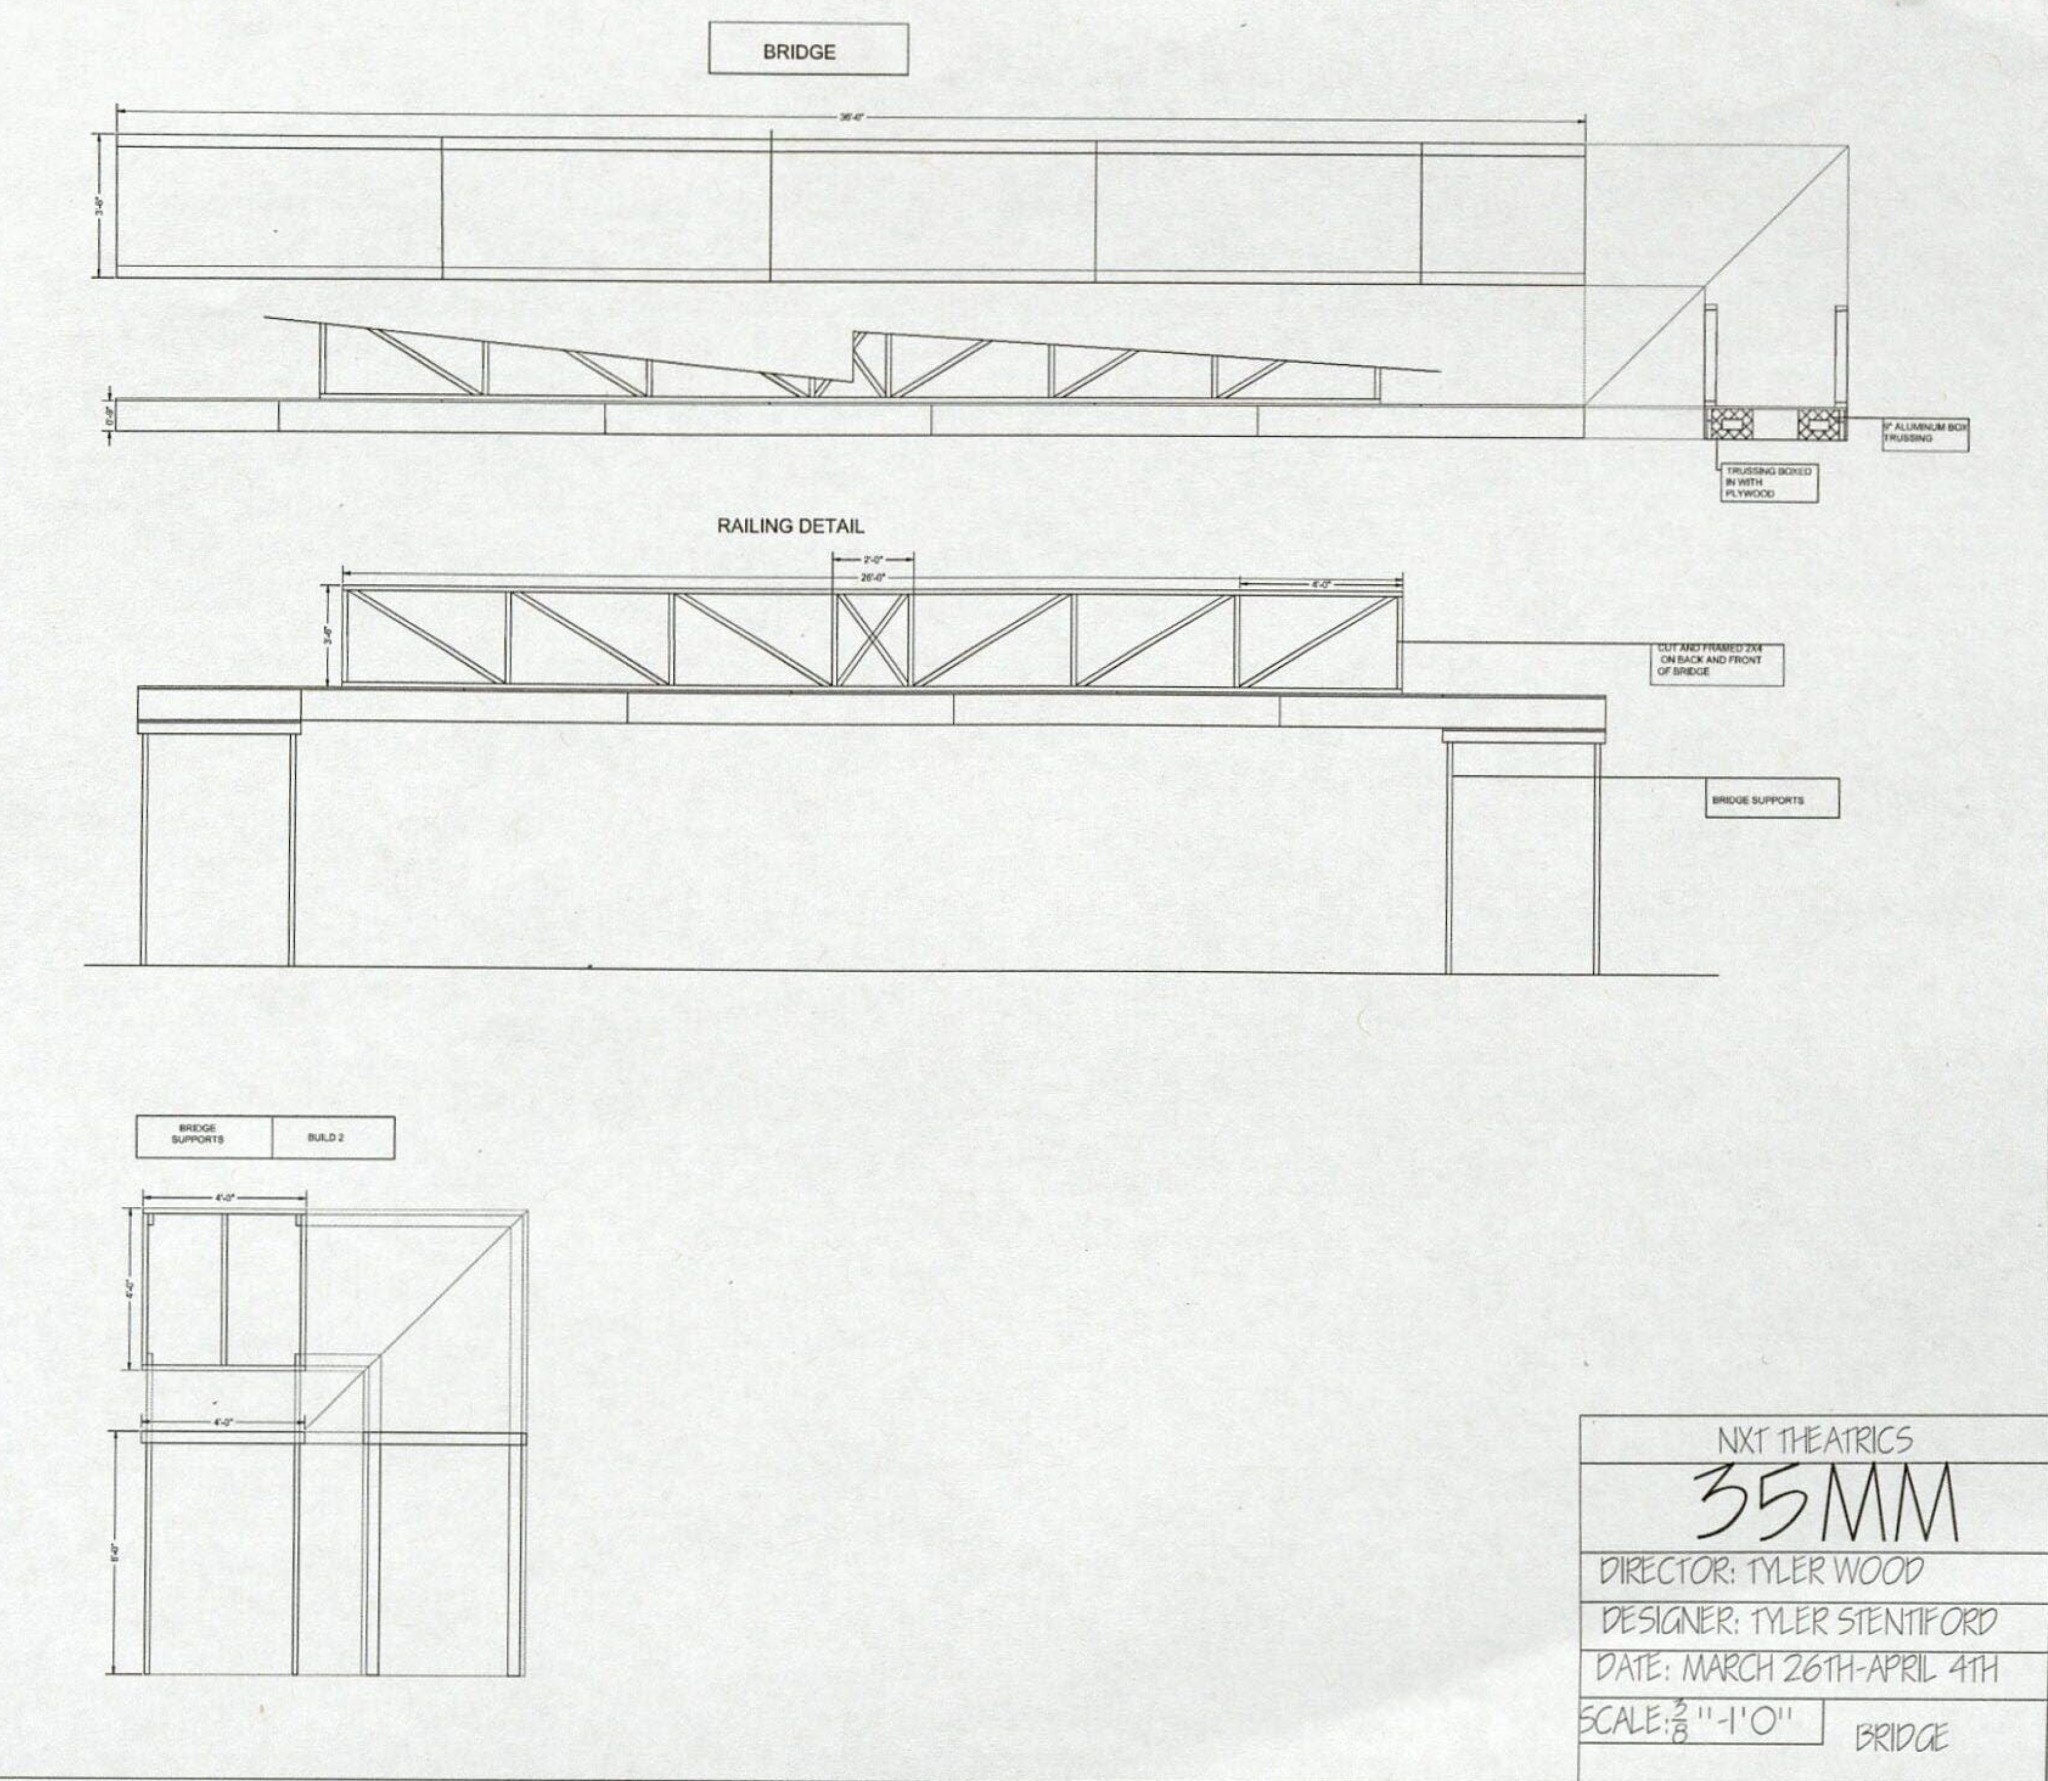 35 MM; Construction Plans